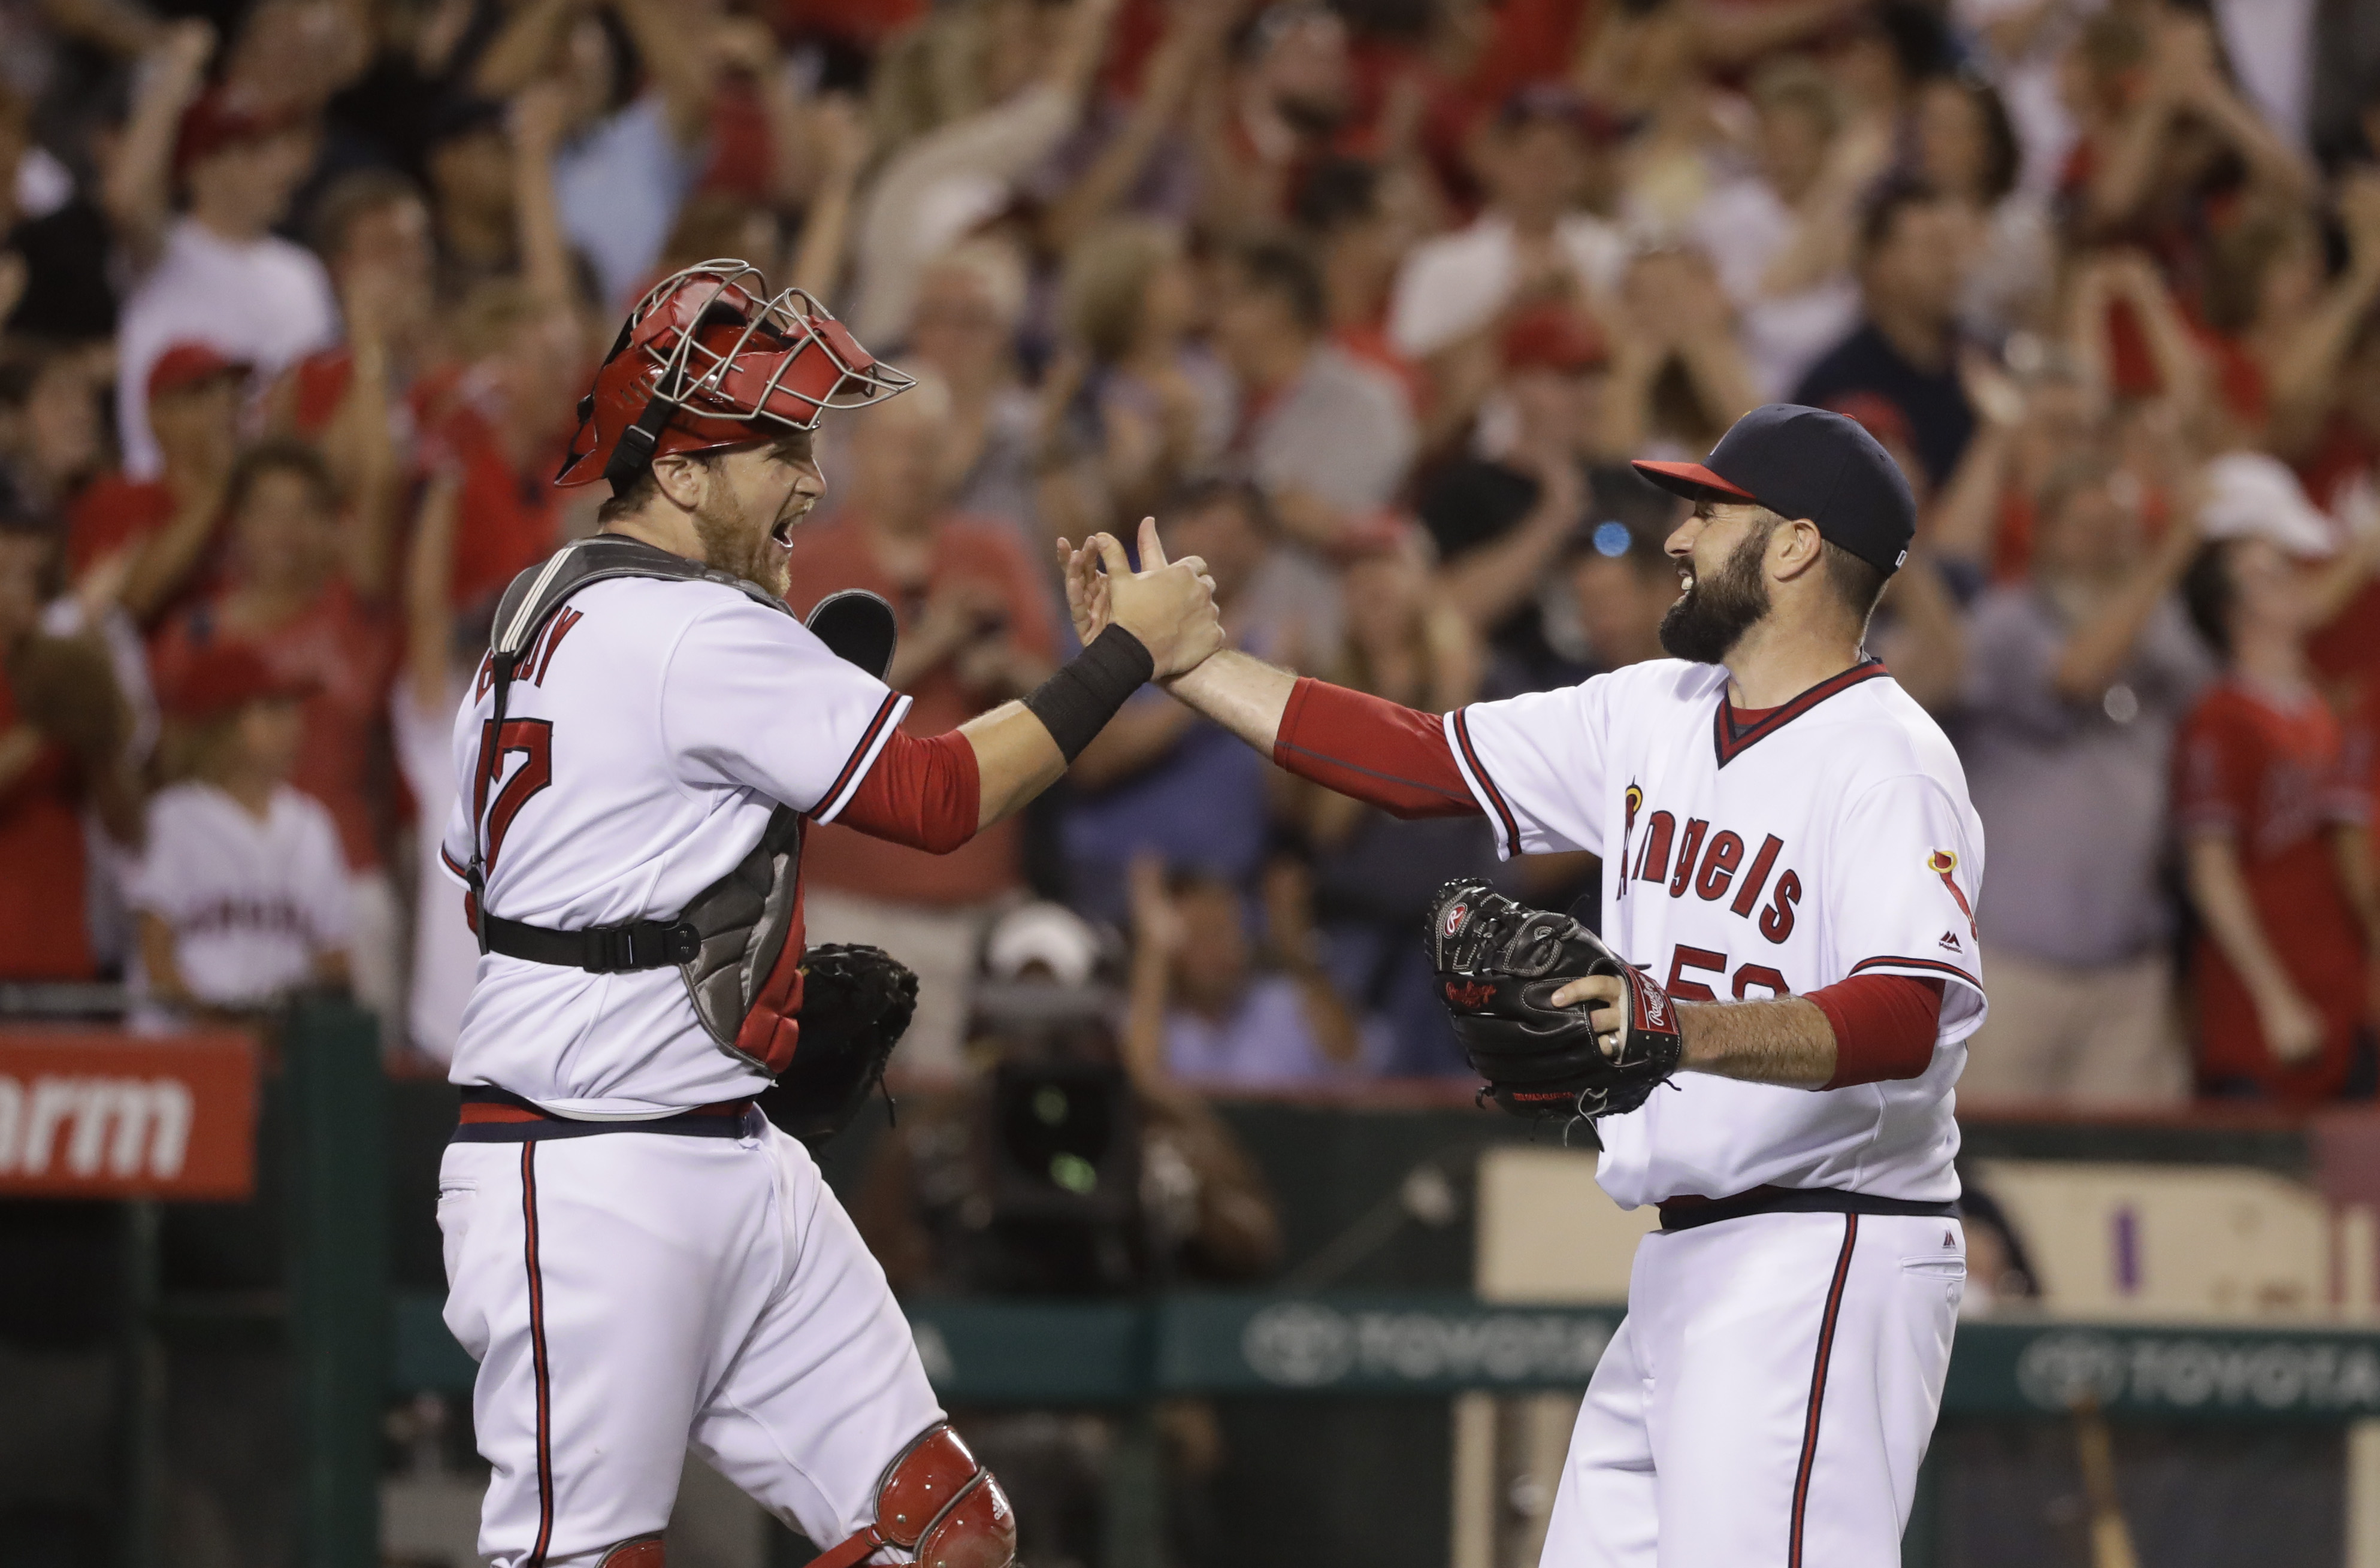 Los Angeles Angels starting pitcher Matt Shoemaker, right, and catcher Jett Bandy celebrate the team's 1-0 win against the Chicago White Sox in a baseball game, Saturday, July 16, 2016, in Anaheim, Calif. (AP Photo/Jae C. Hong)